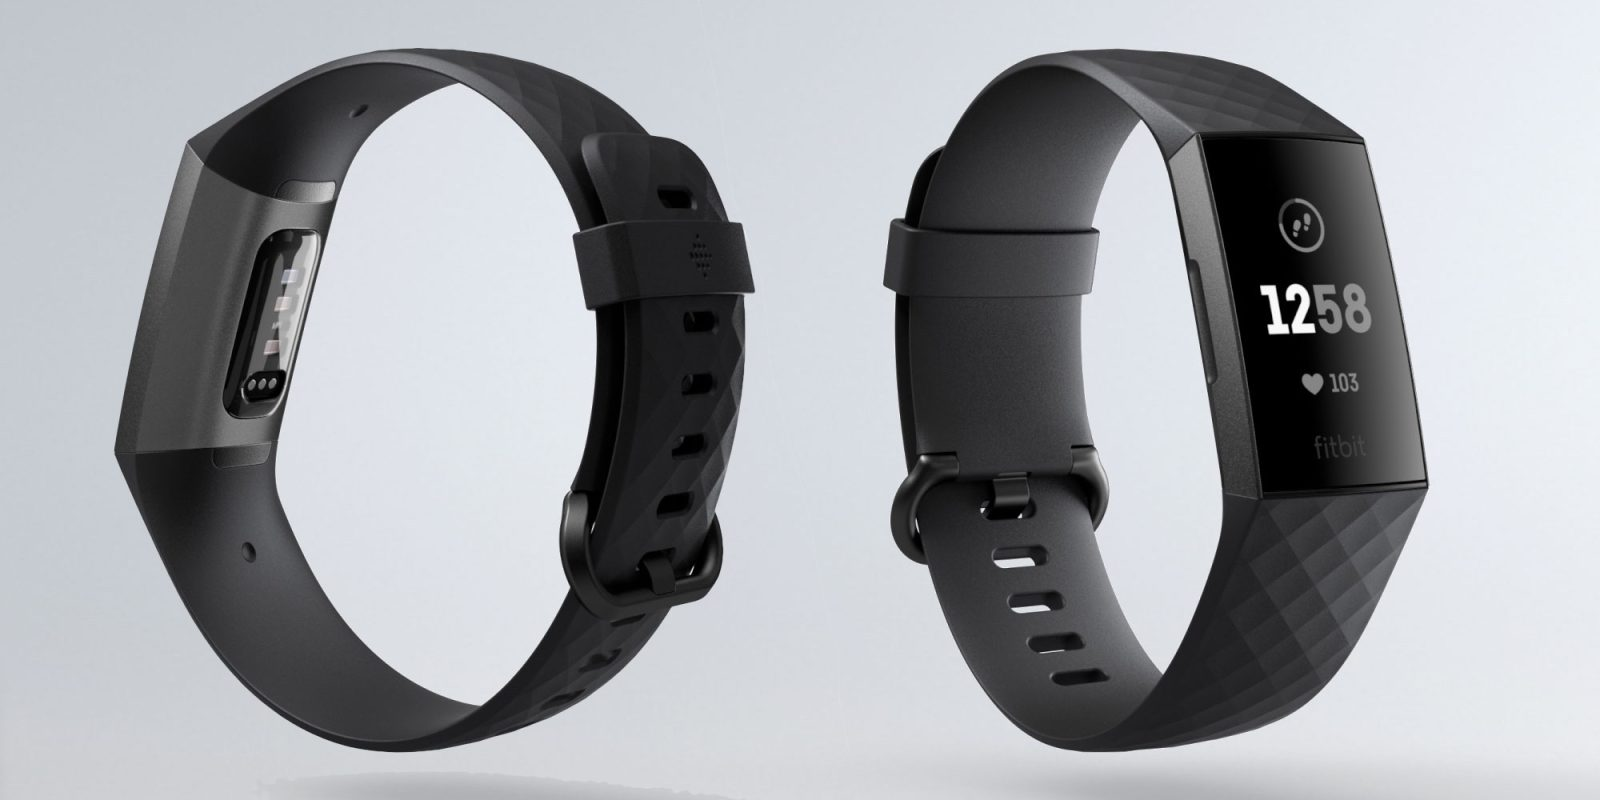 Adorn your wrist with Fitbit's Charge 3 Fitness Tracker at a new